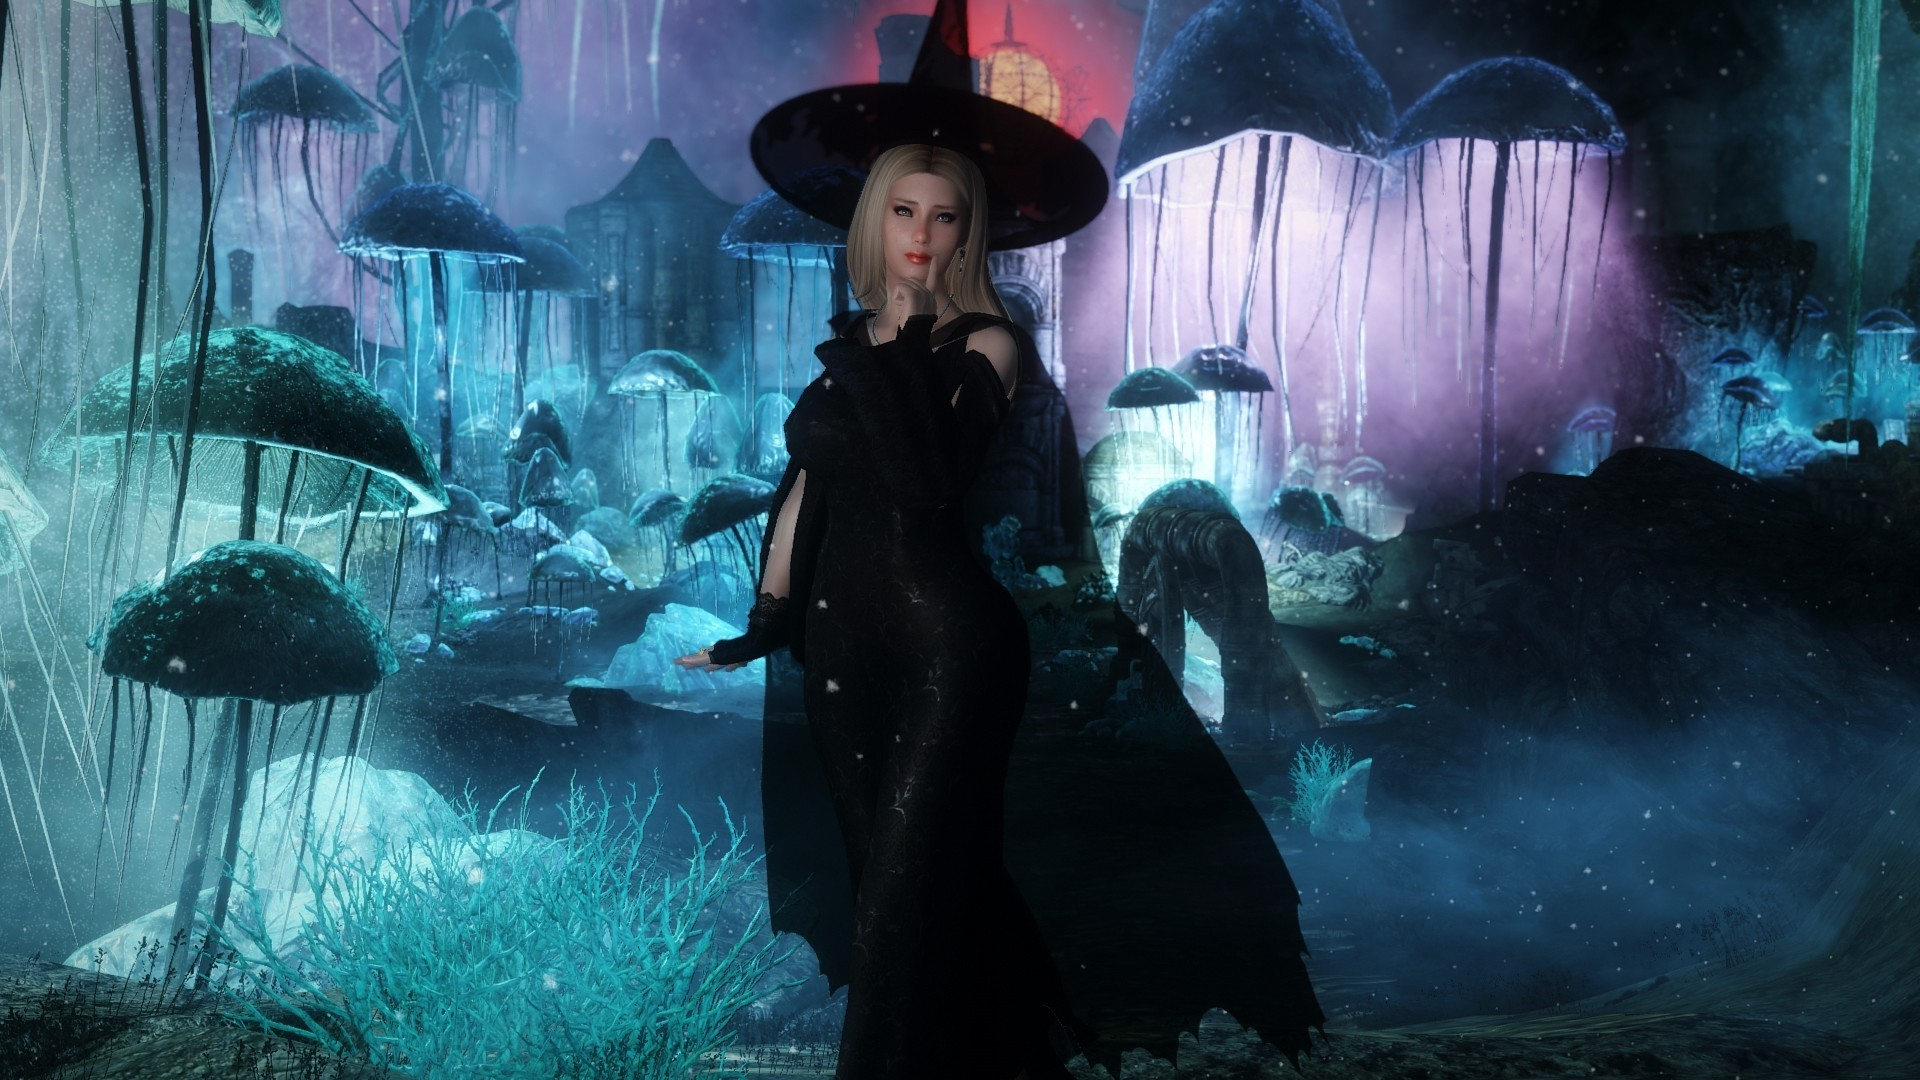 Witch PC Wallpaper HD